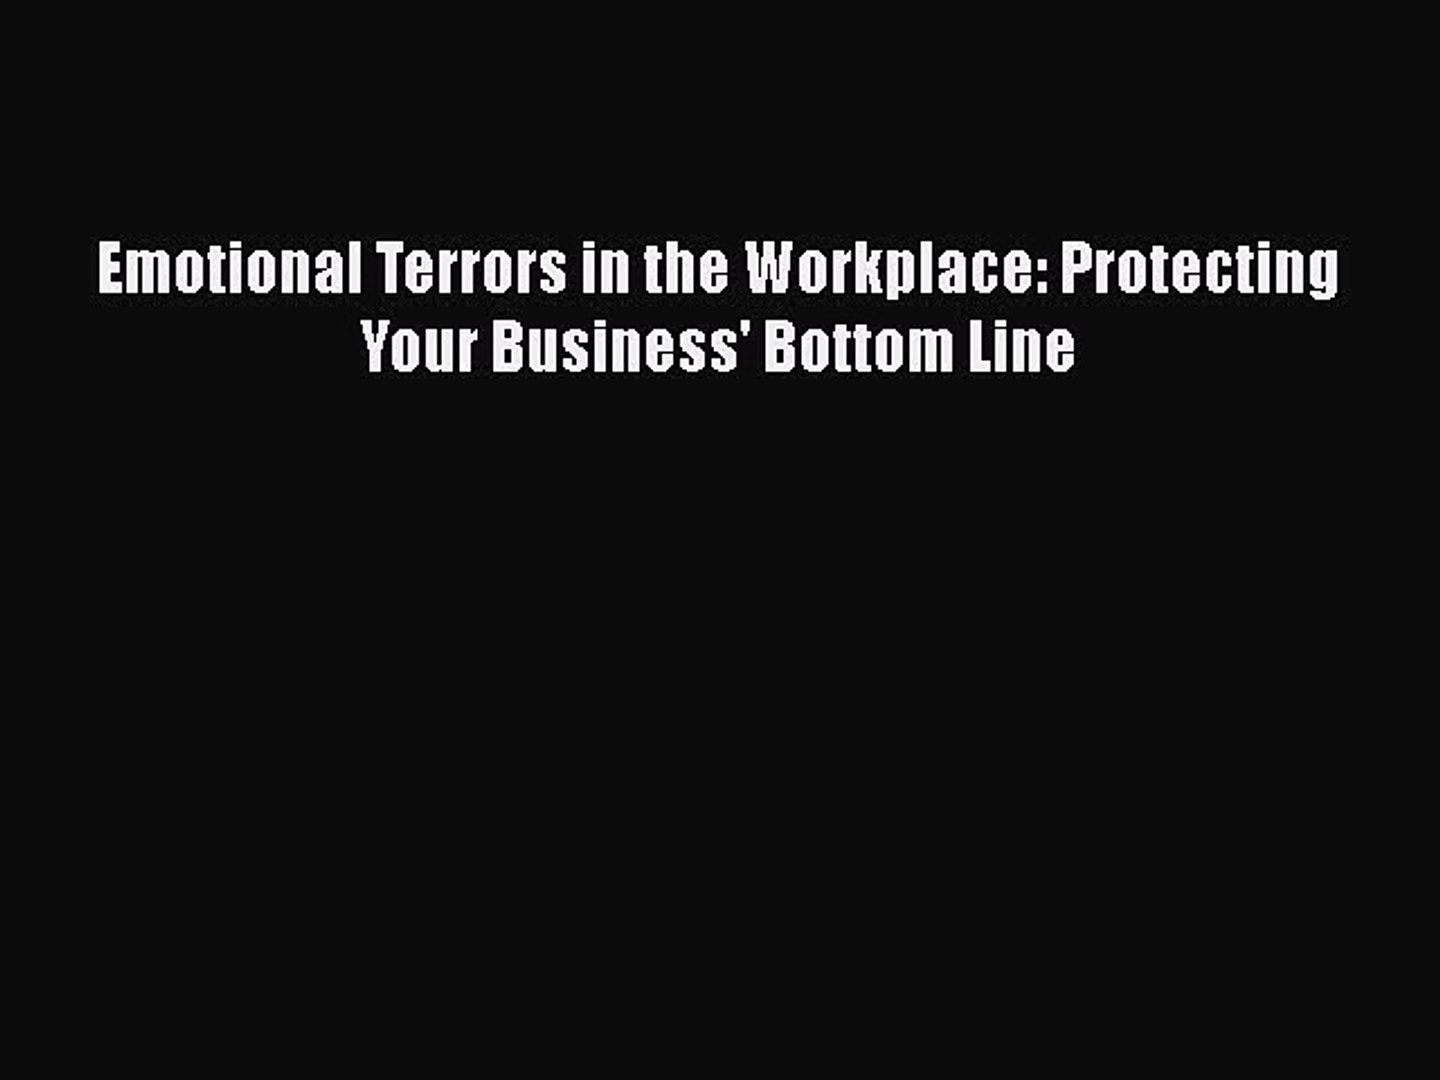 Download Emotional Terrors in the Workplace: Protecting Your Business' Bottom Line  Read Online